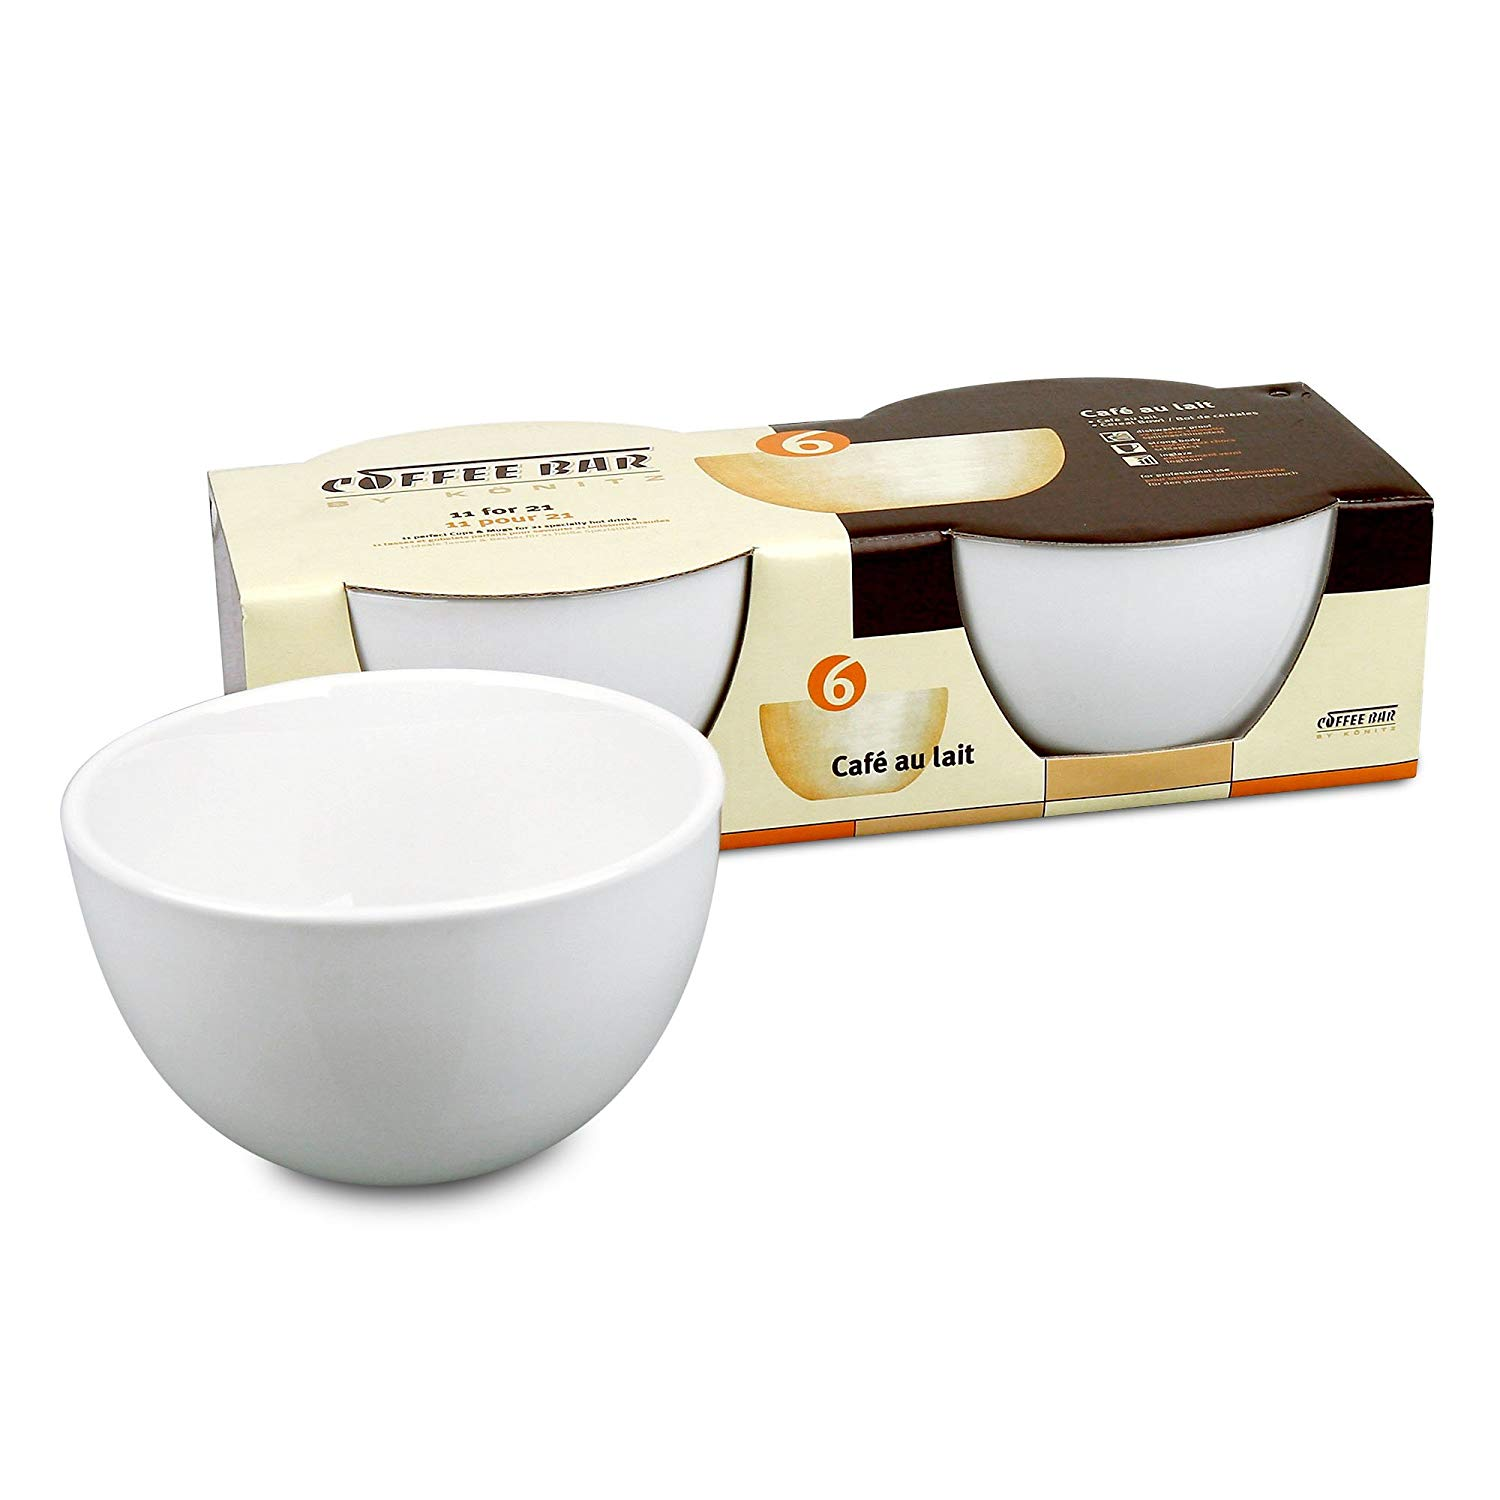 Gifts for Coffee Lovers: Konitz Cafe Au Lait Bowls